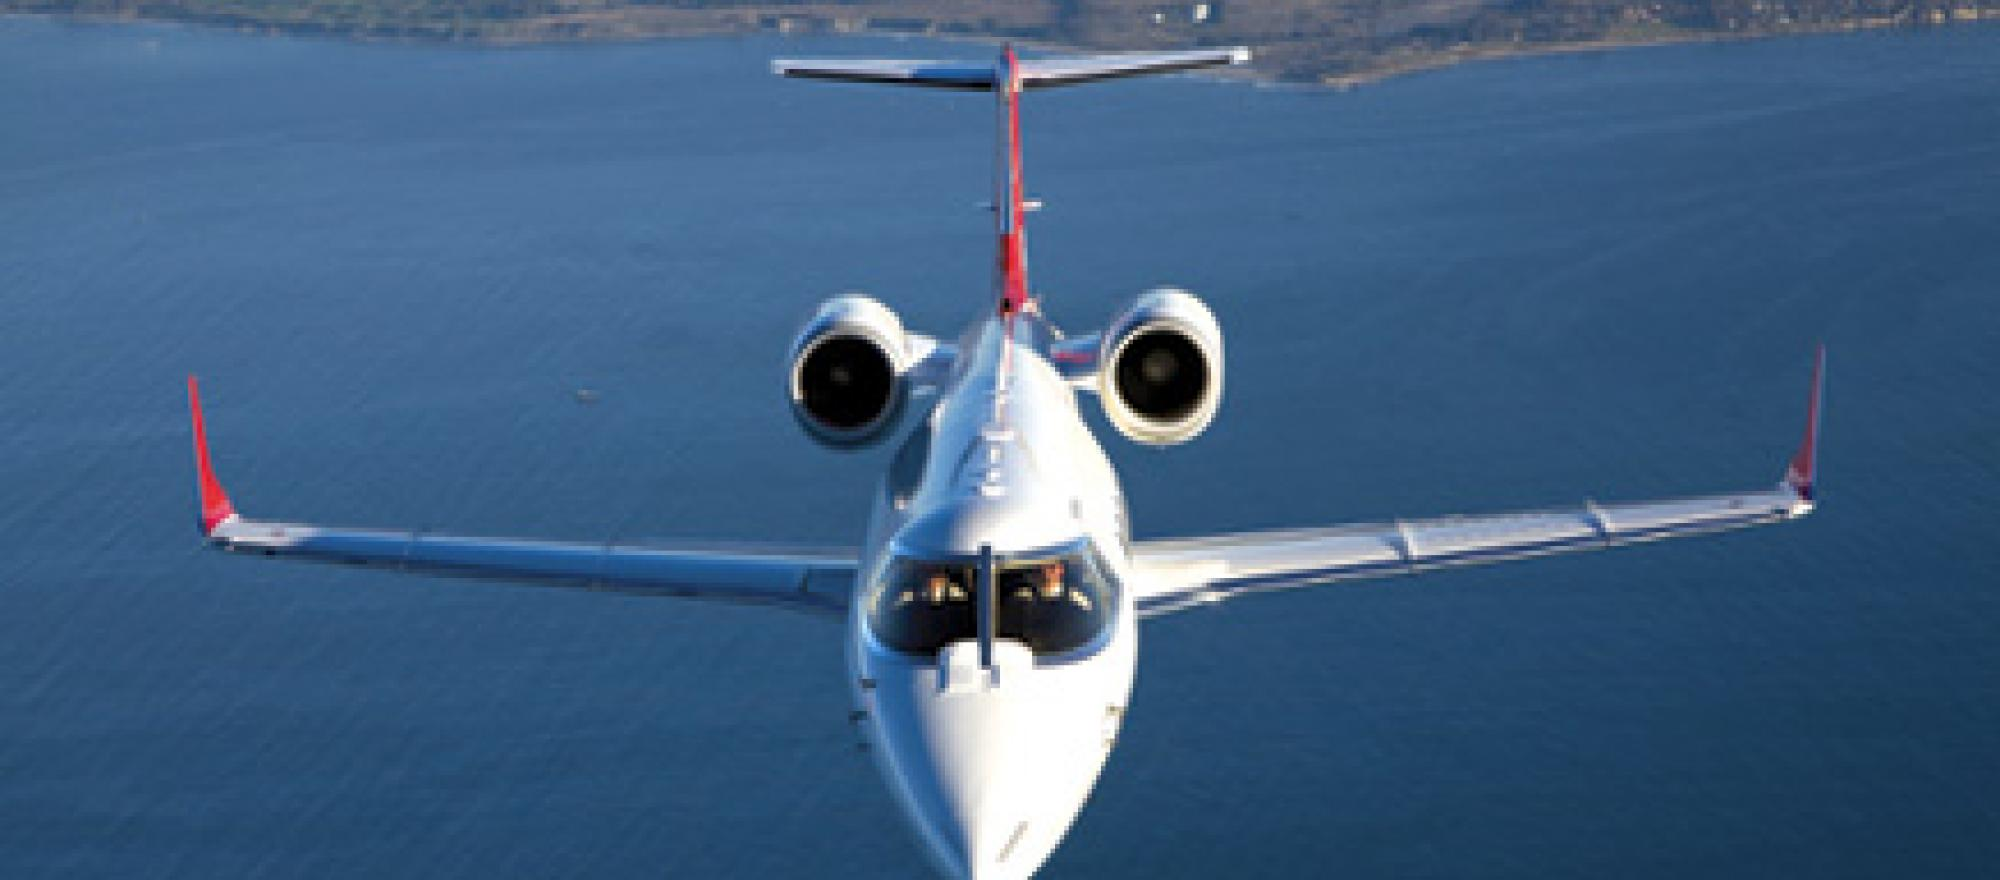 Jet Republic plans to buy up 110 Bombardier Learjet 60XRs, with deliveries of